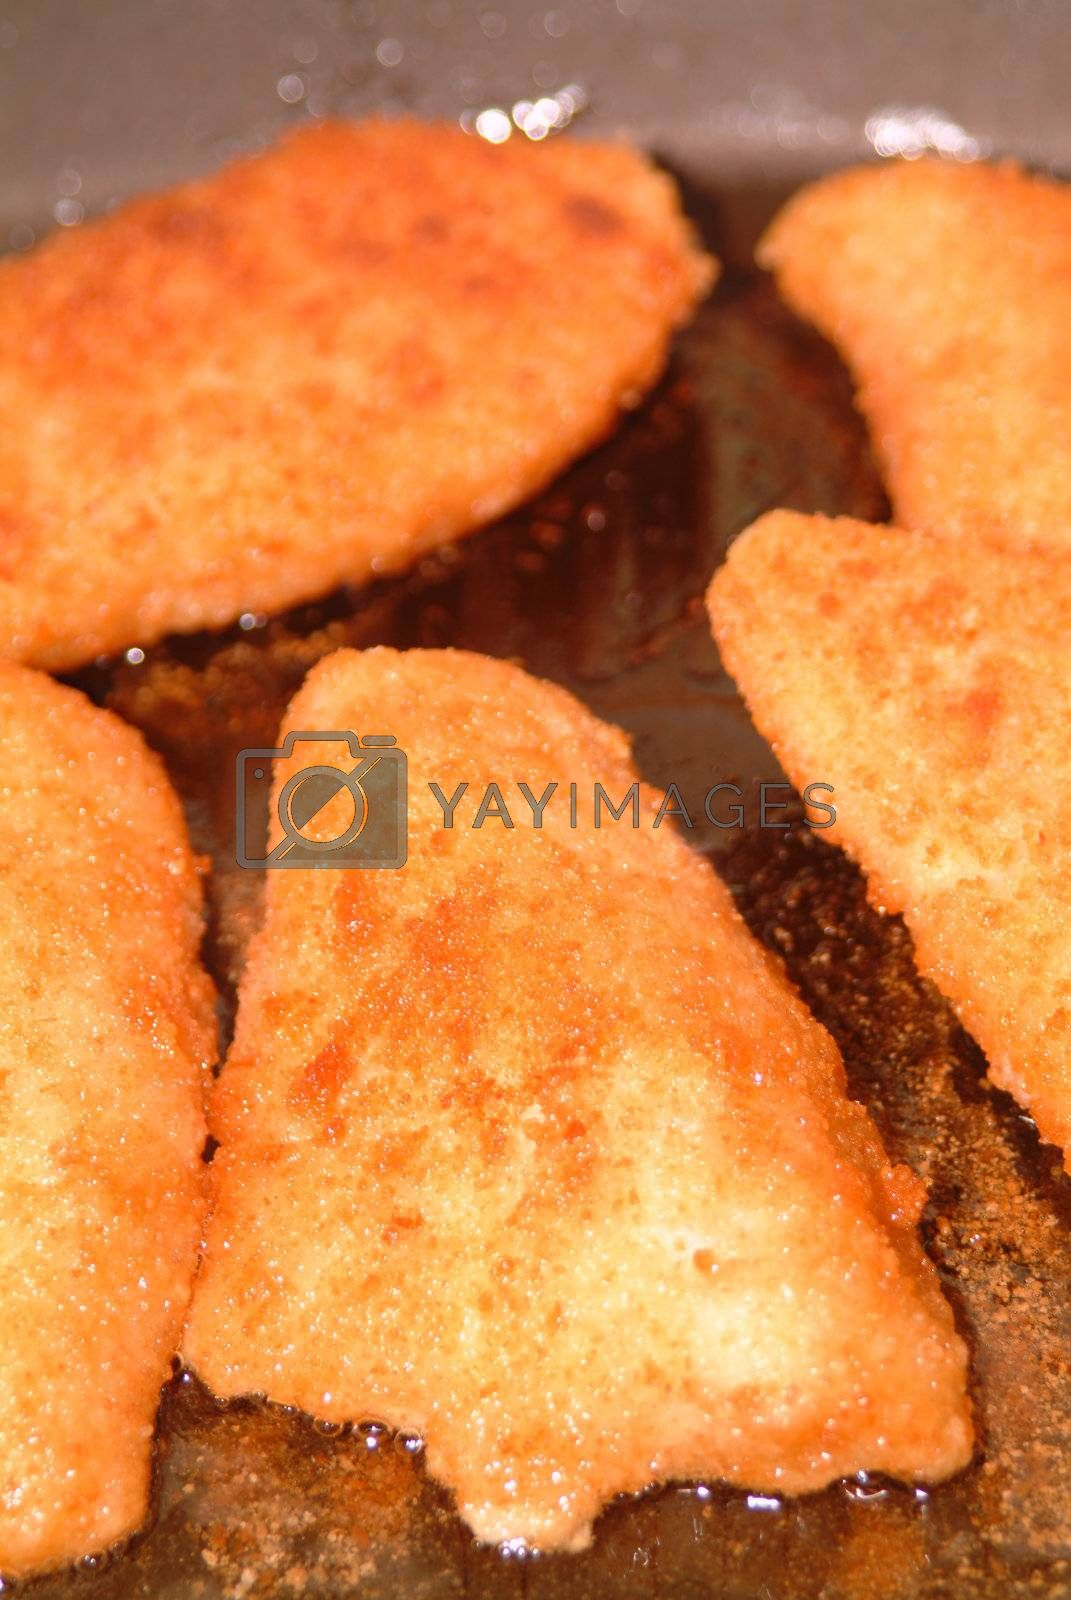 Royalty free image of some fried fish filet by Szakaly